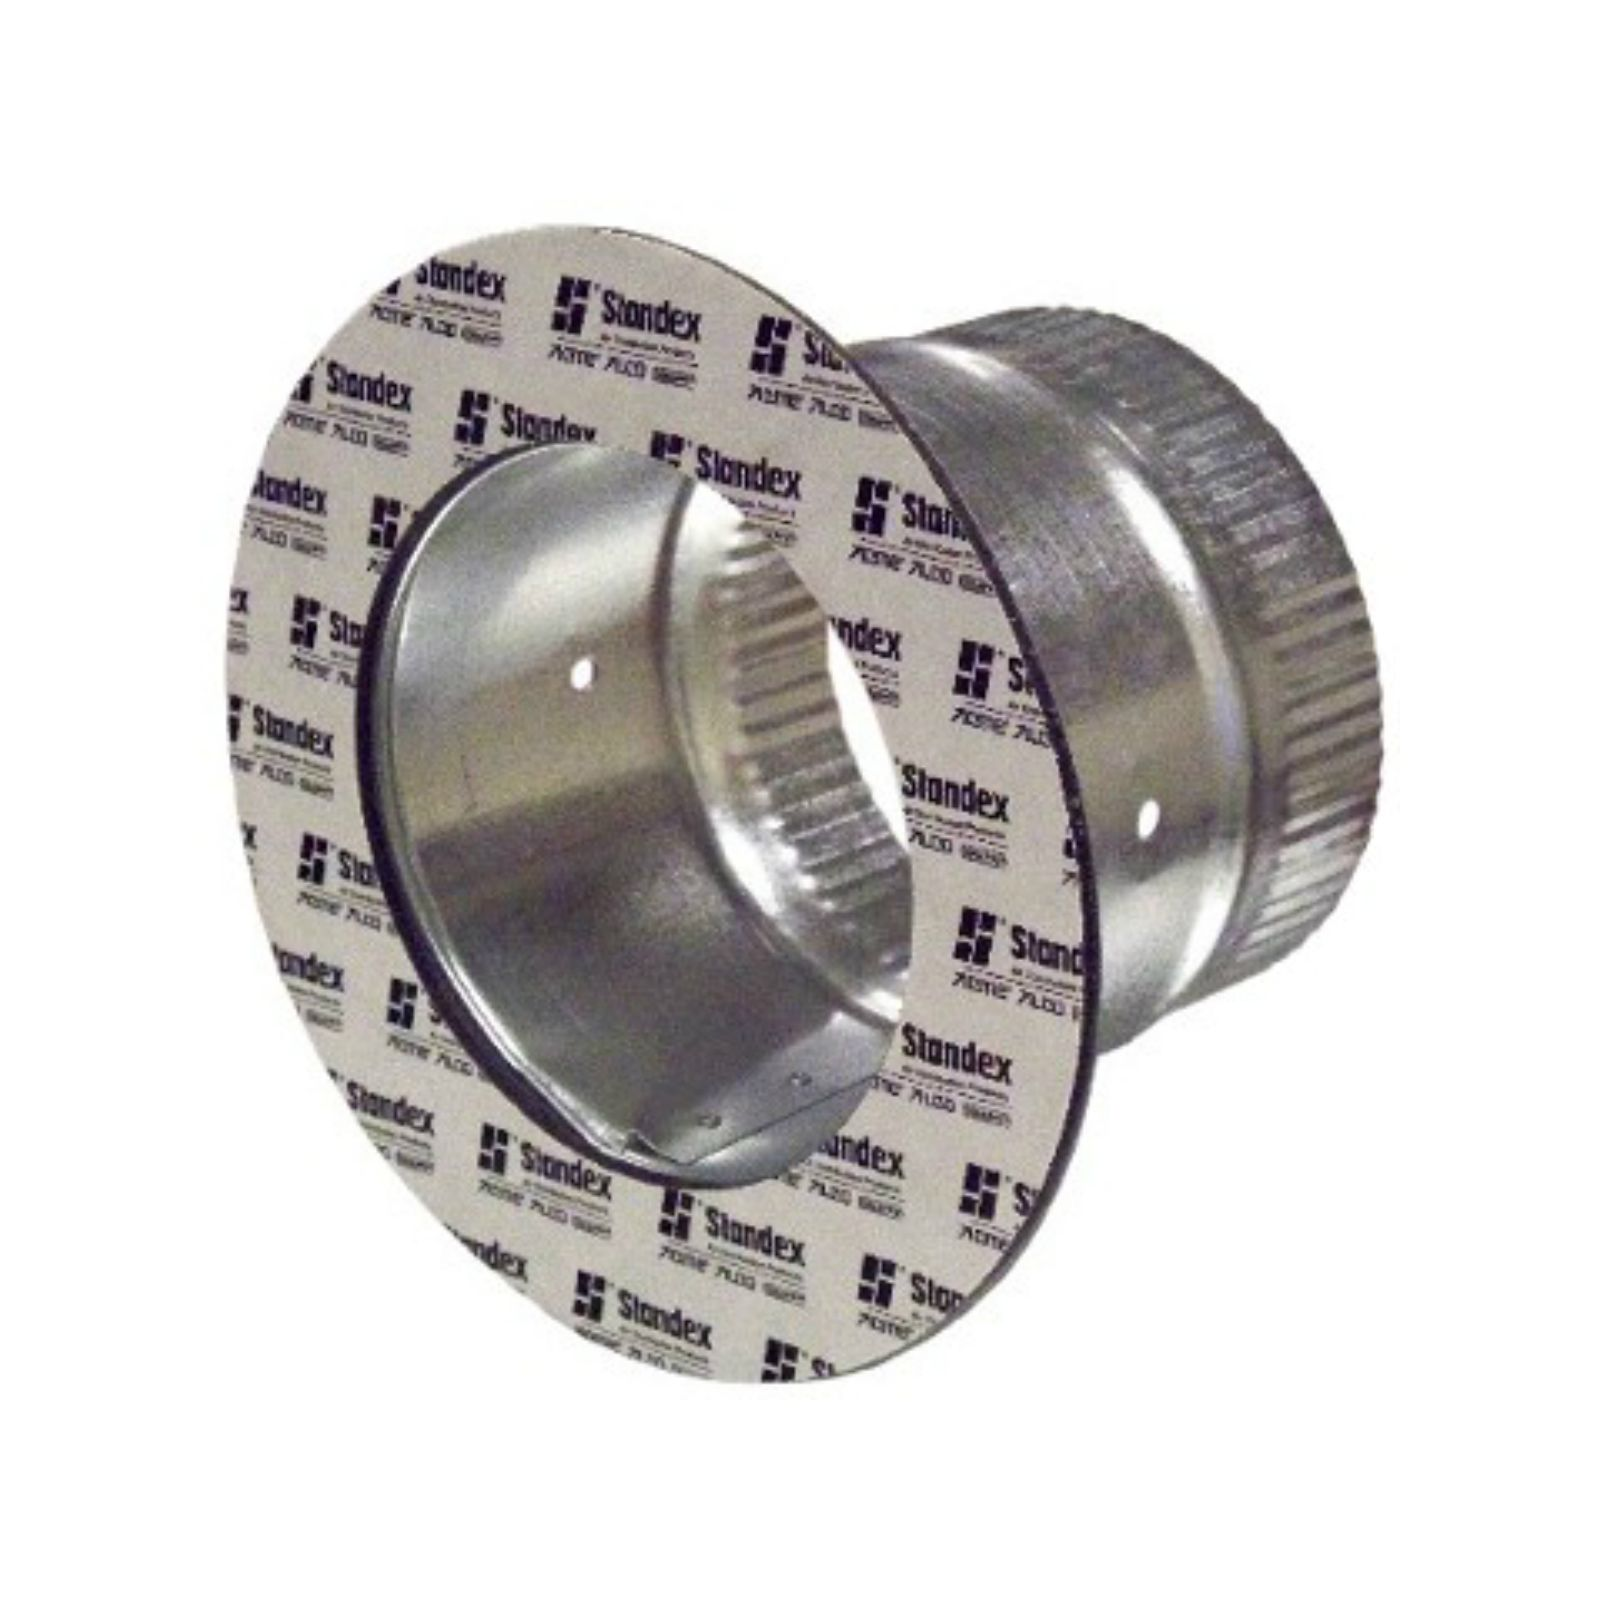 "Snappy 167-10 - #167 - Adhesive Takeoff, 6"" Tube Length, 1 1/2"" Flange, for 10"" Duct"